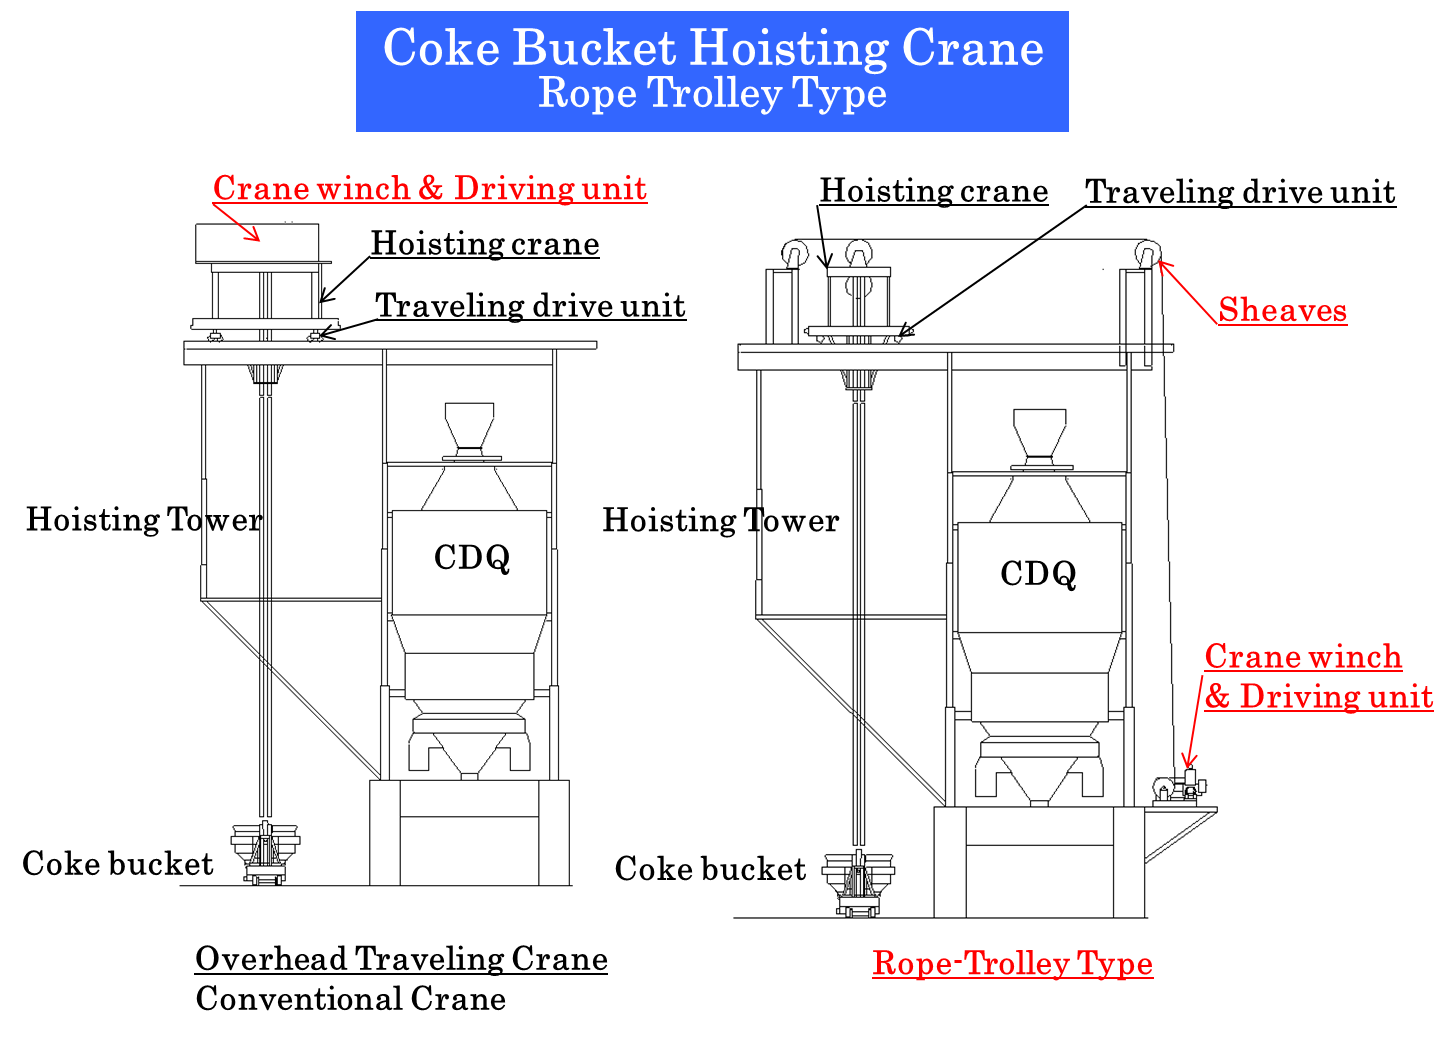 Coke Dry Quenching Cdq Steel Plantech Power Plant Diagrams Process As Our Rope Trolley Type Bucket Hoisting Crane Has Its Winch On The Position Near Ground Level Weight Of Upper Part A Structure Can